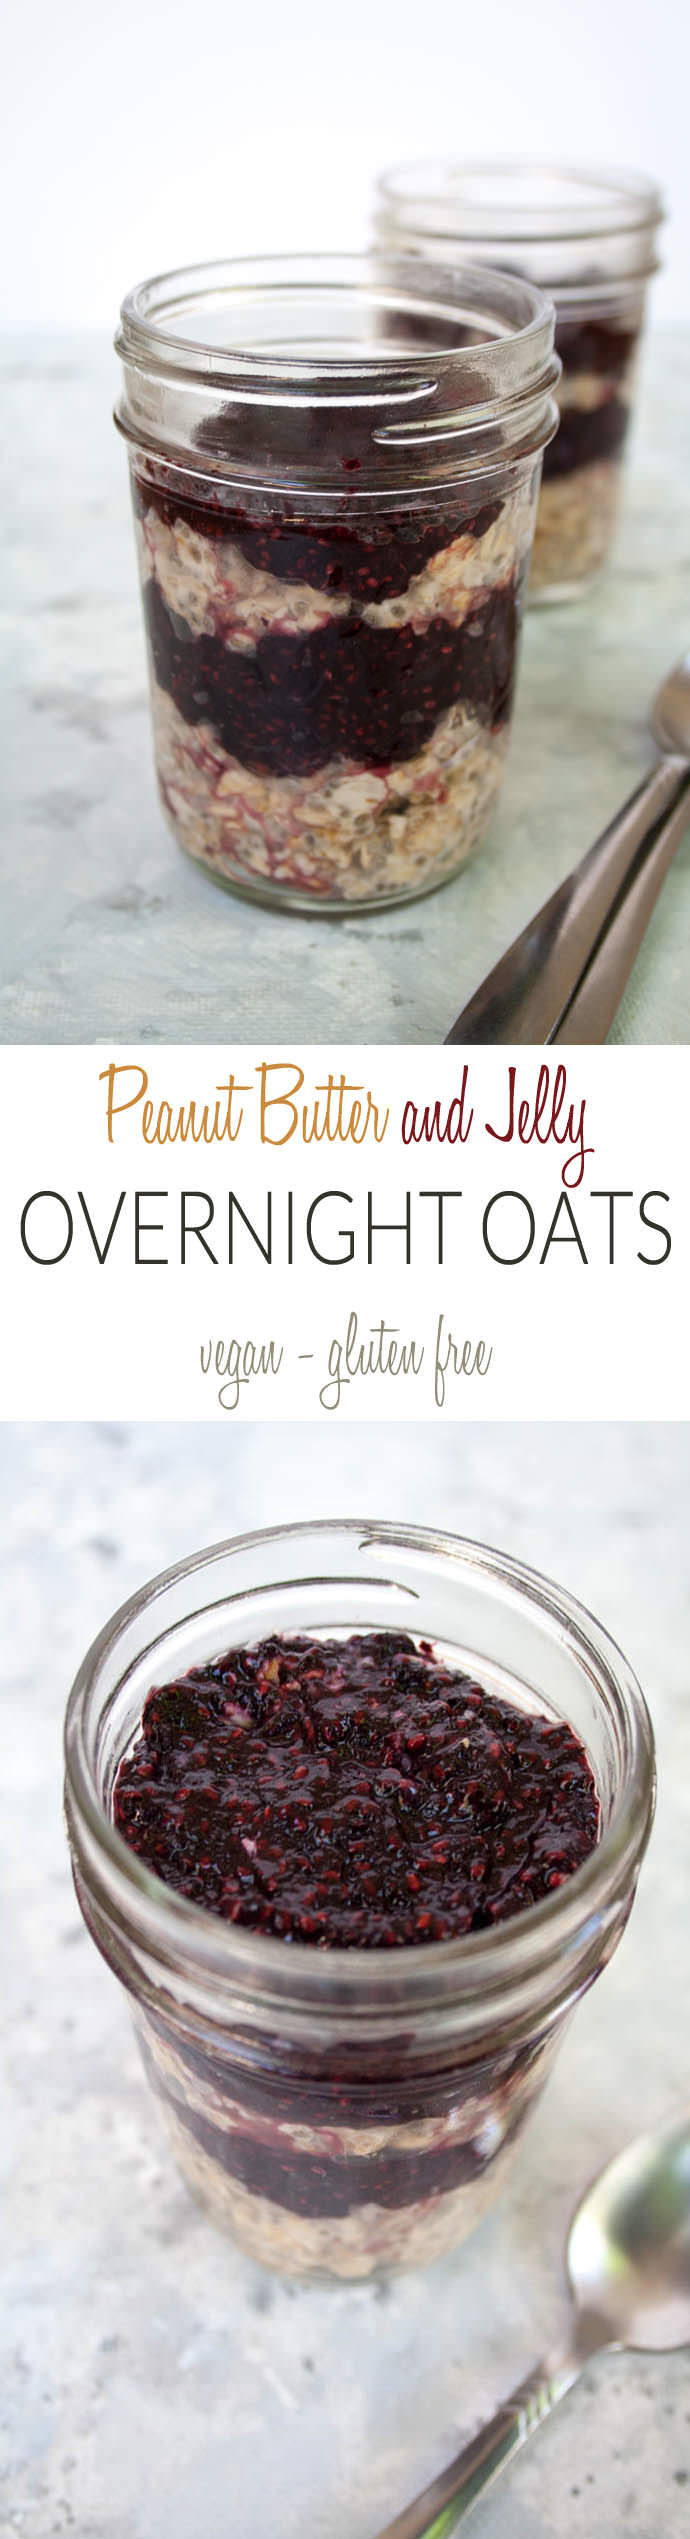 Peanut Butter and Jelly Overnight Oats collage photo